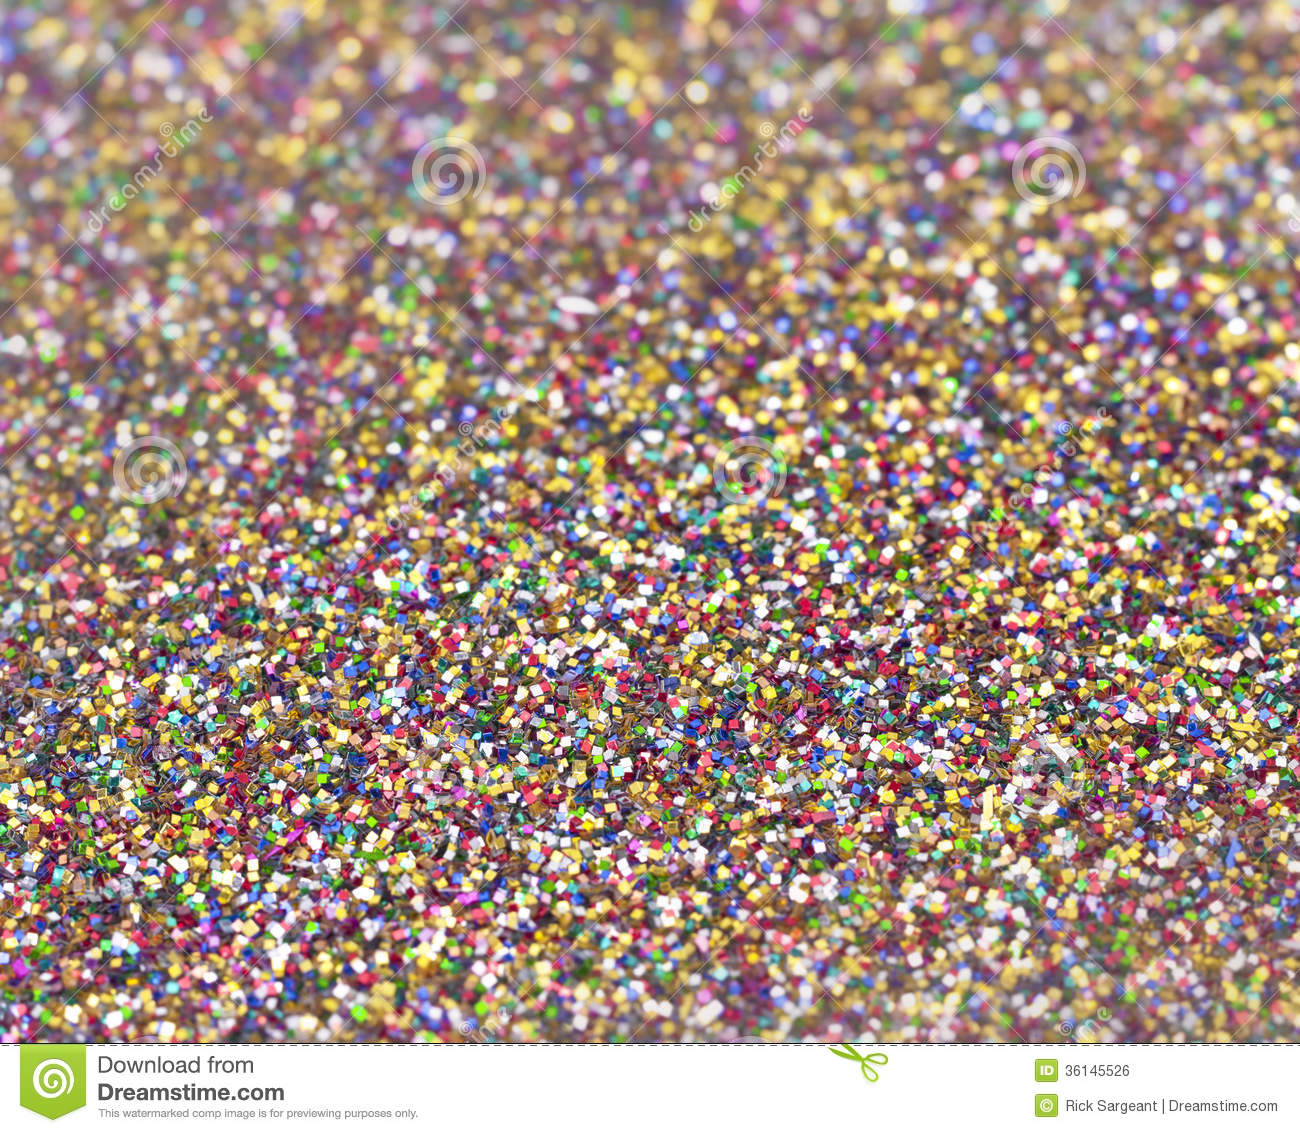 Glitter River Royalty Free Stock Image - Image: 36145526 | 1300 x 1133 jpeg 376kB